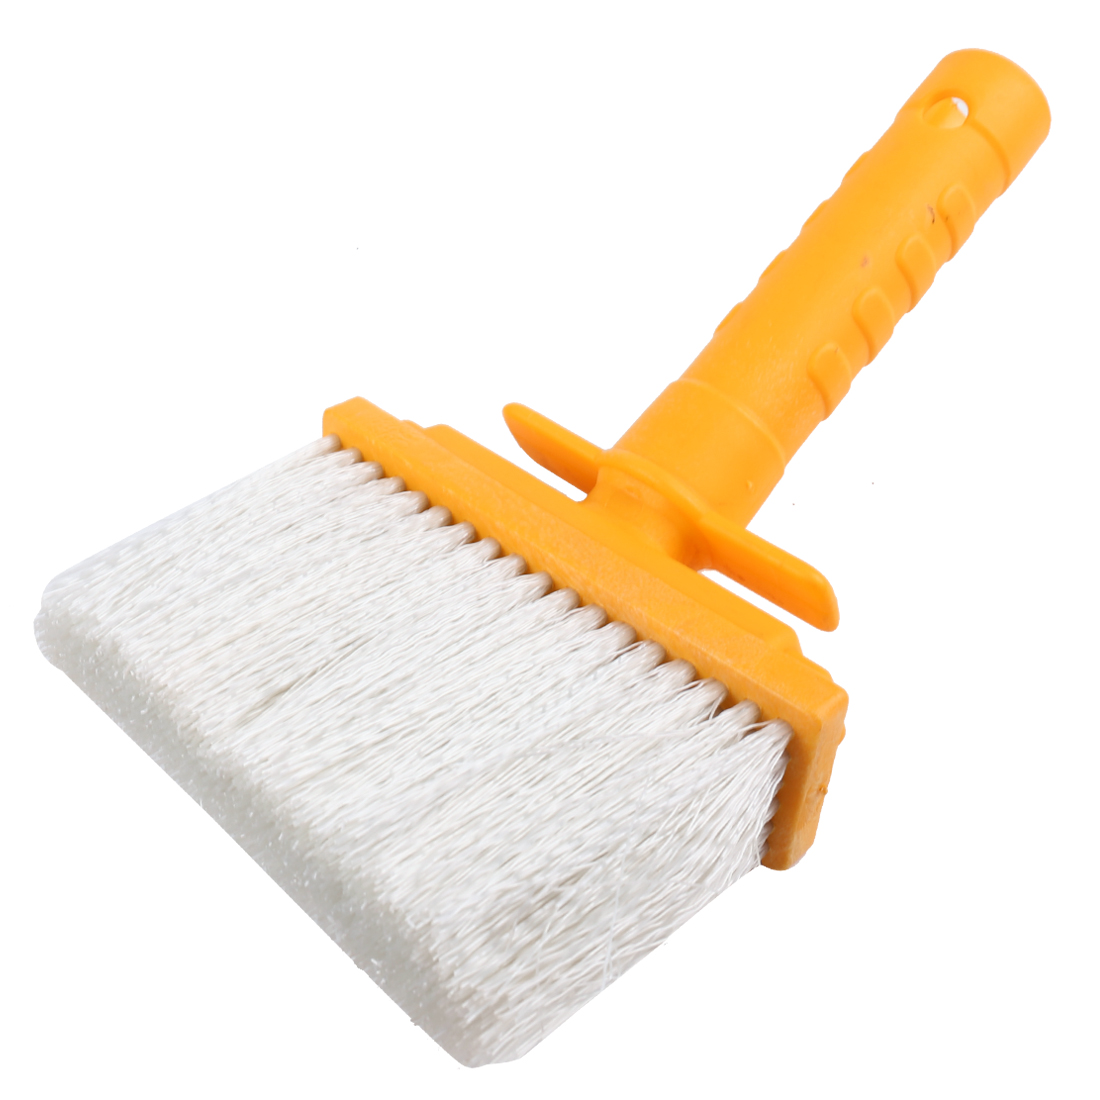 Yellow Portable Nonslip Plastic Handle White Wall Scrub Brush